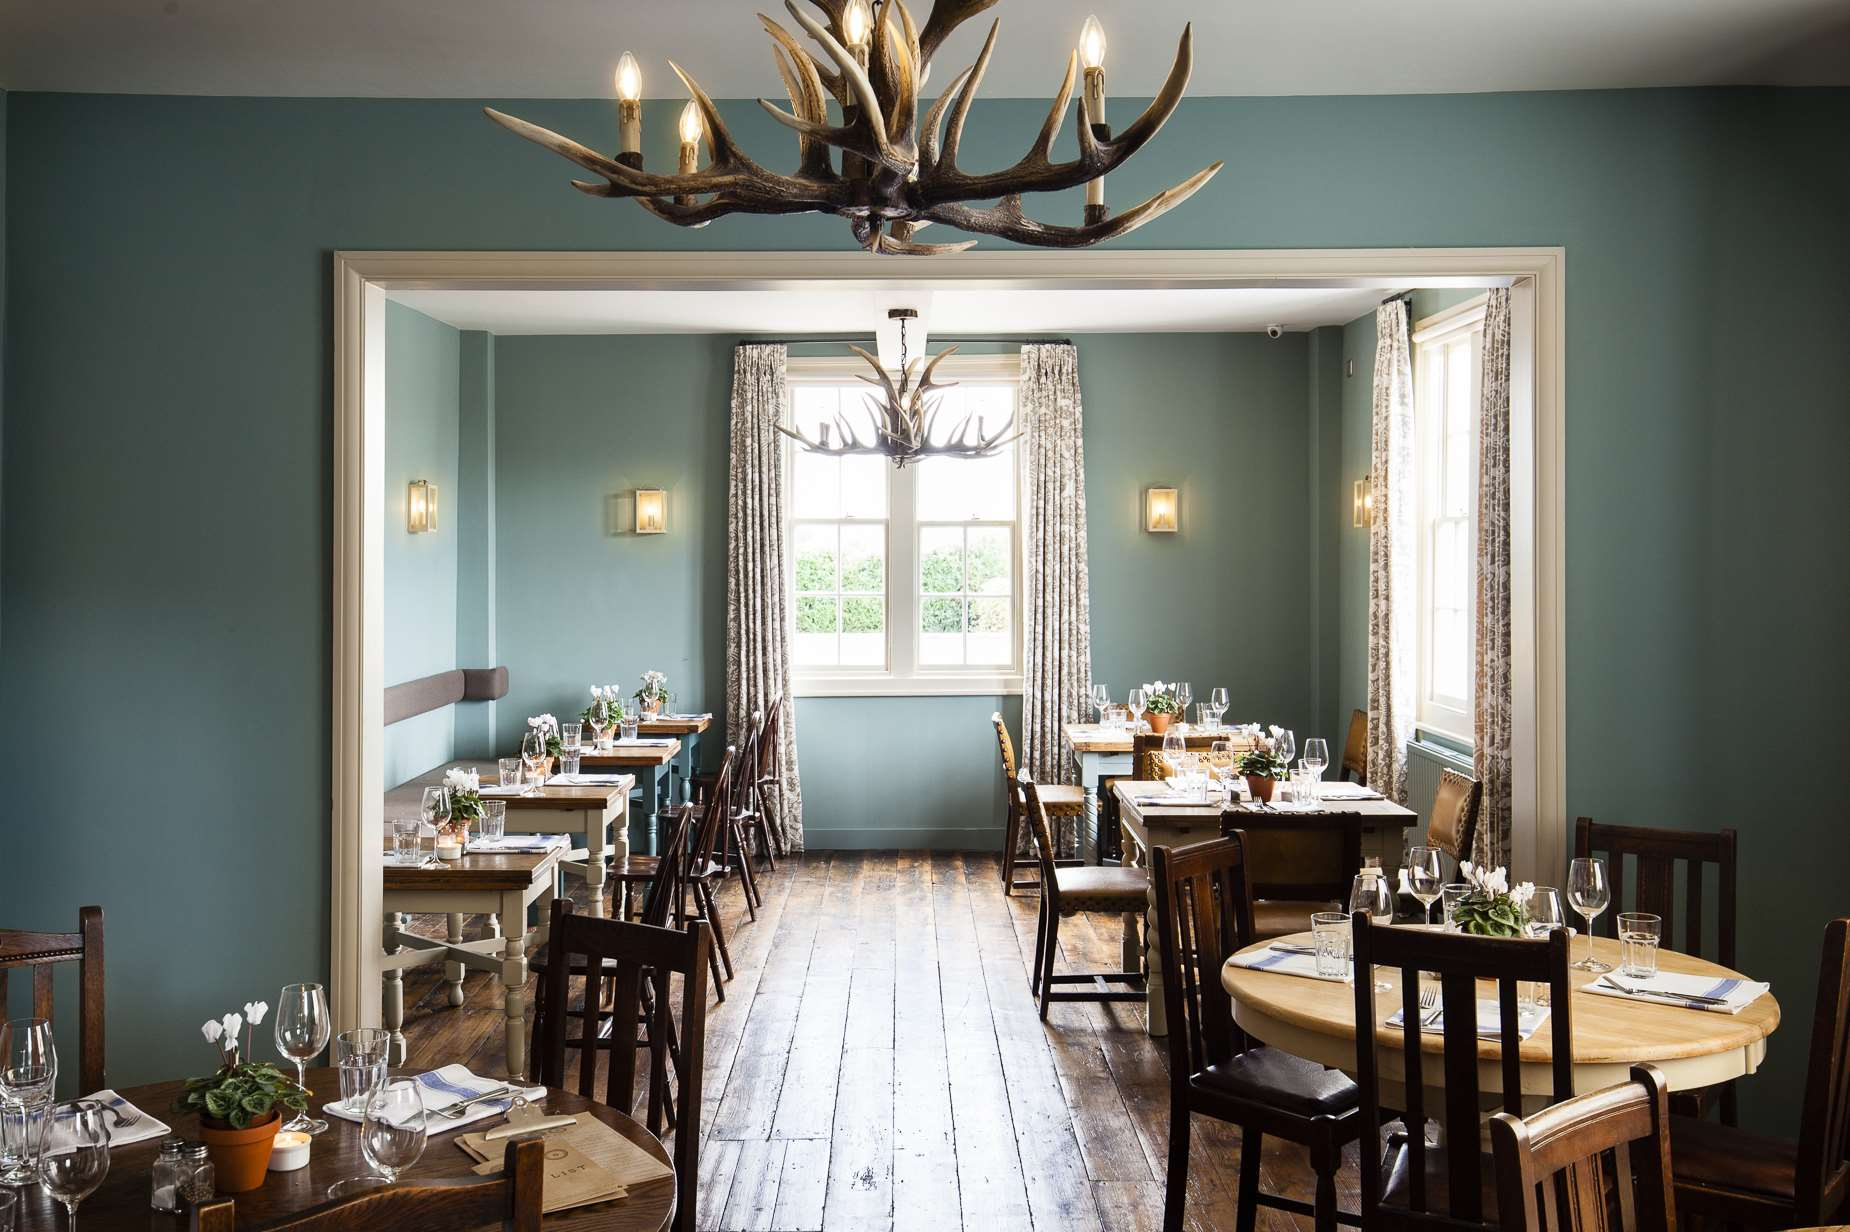 The Barrow House dining room in Egerton